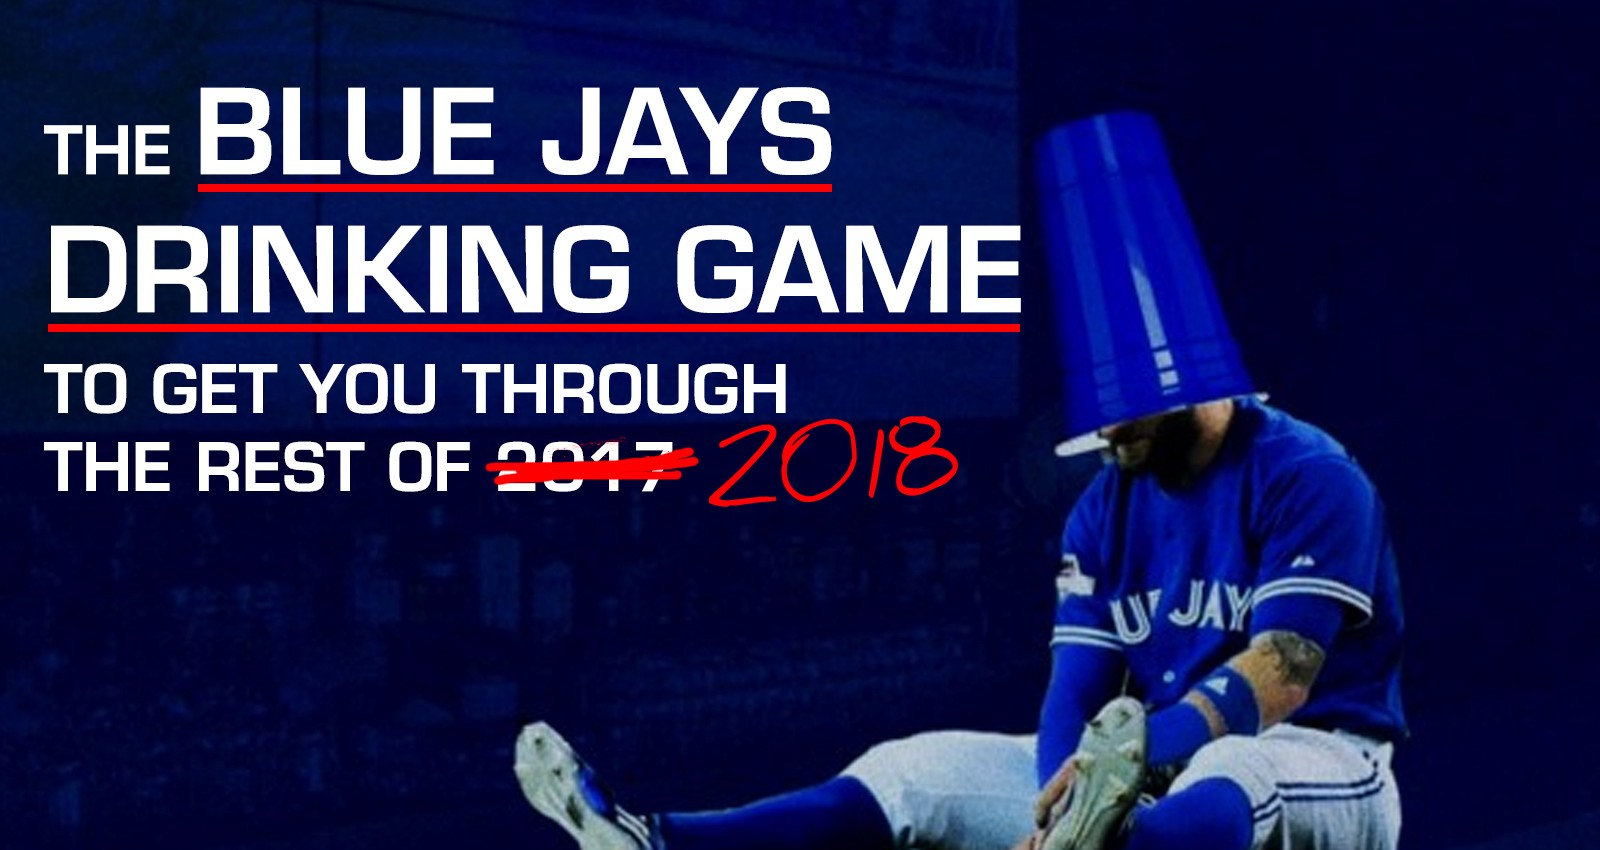 The Toronto Blue Jays Drinking Game To Get You Through the Rest of